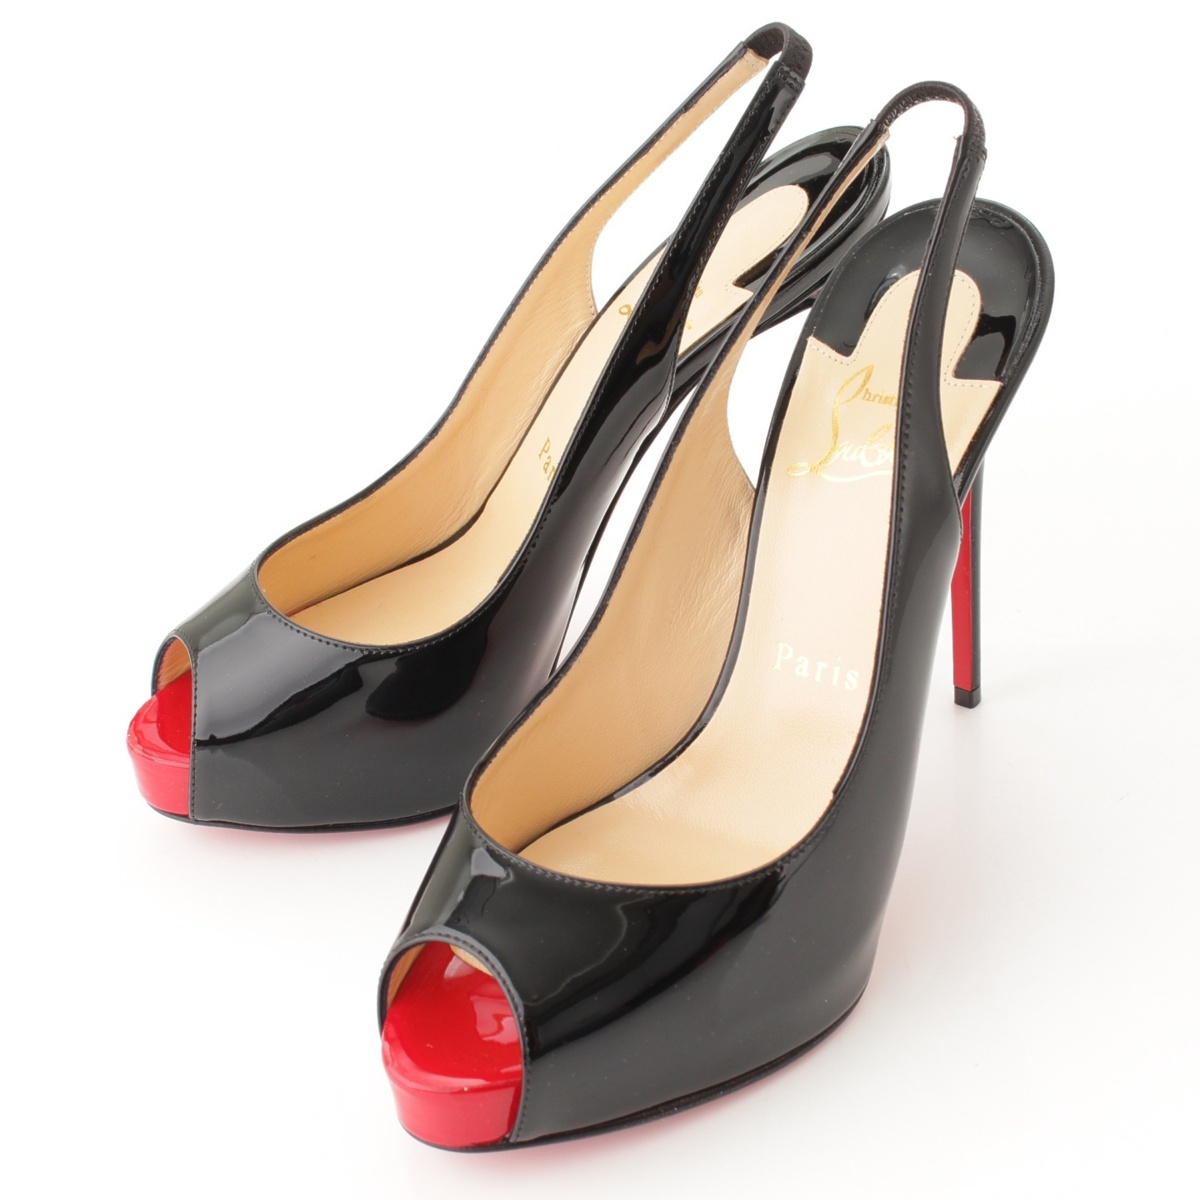 Christian Louboutin PRIVATE NUMBER バックスリング パテント パンプス ブラック 37 未使用59301【正規品】【送料無料】